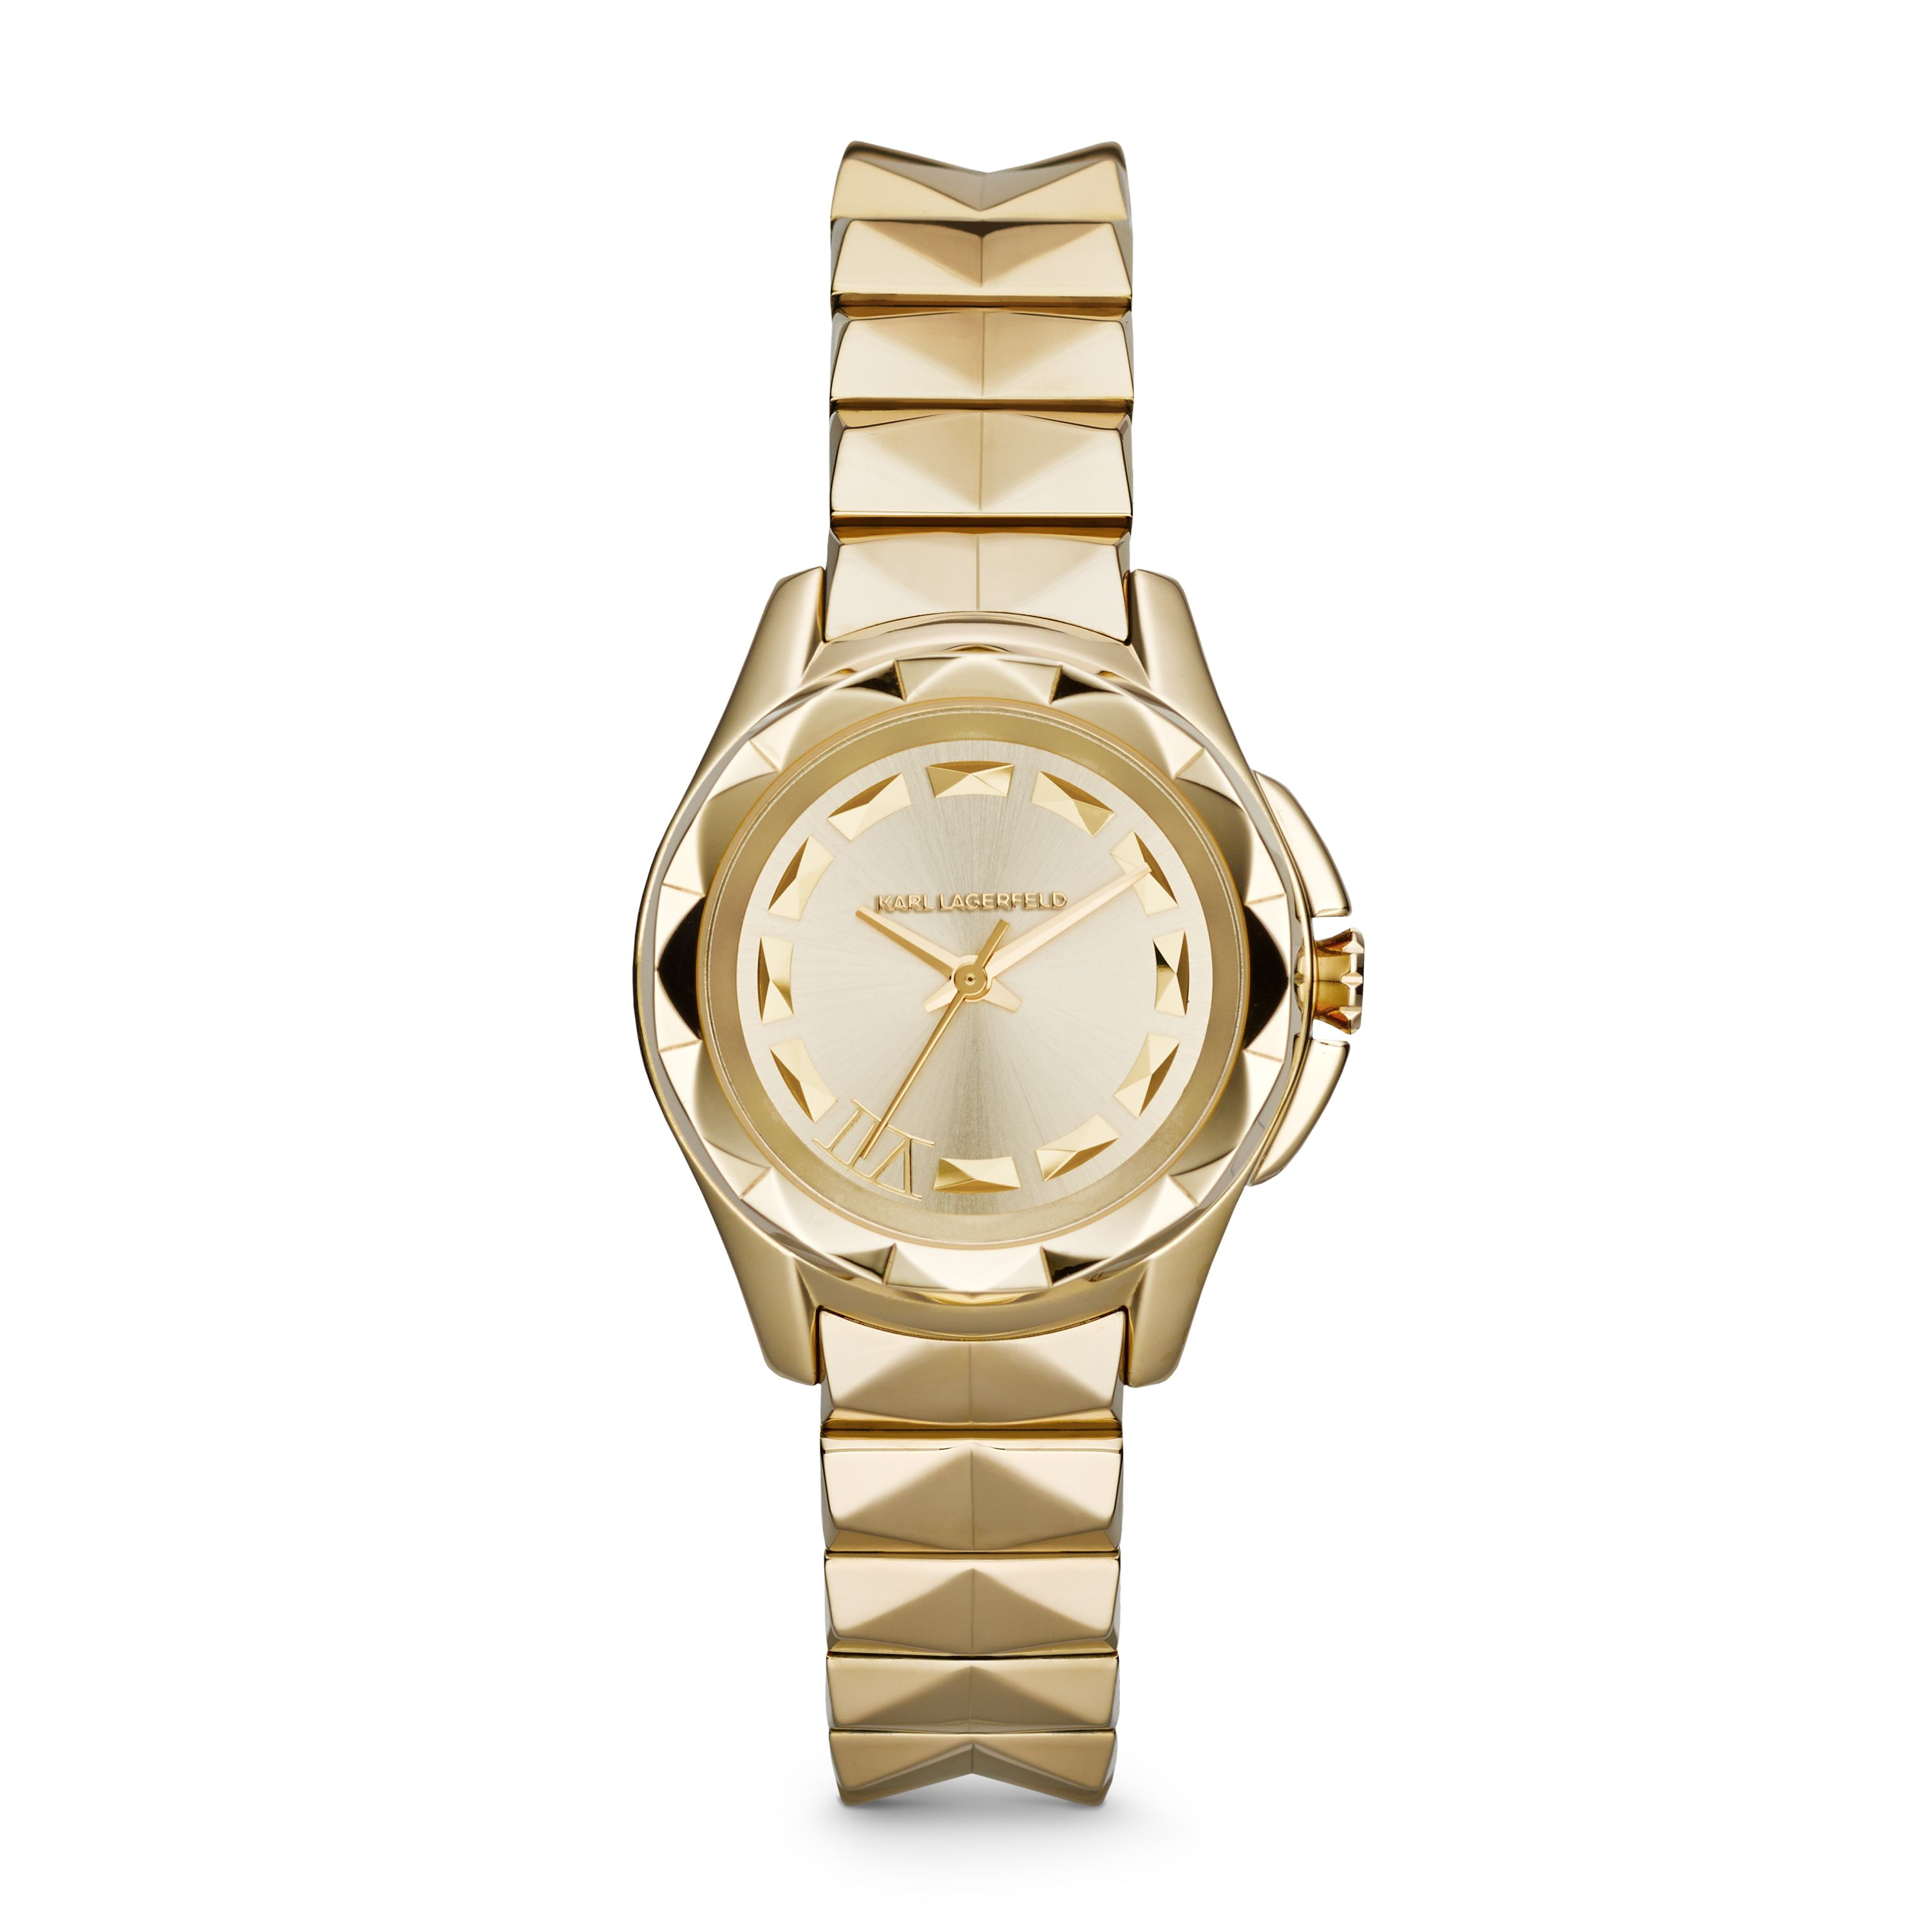 KL1026 Karl 7 Gold Ladies Bracelet Watch